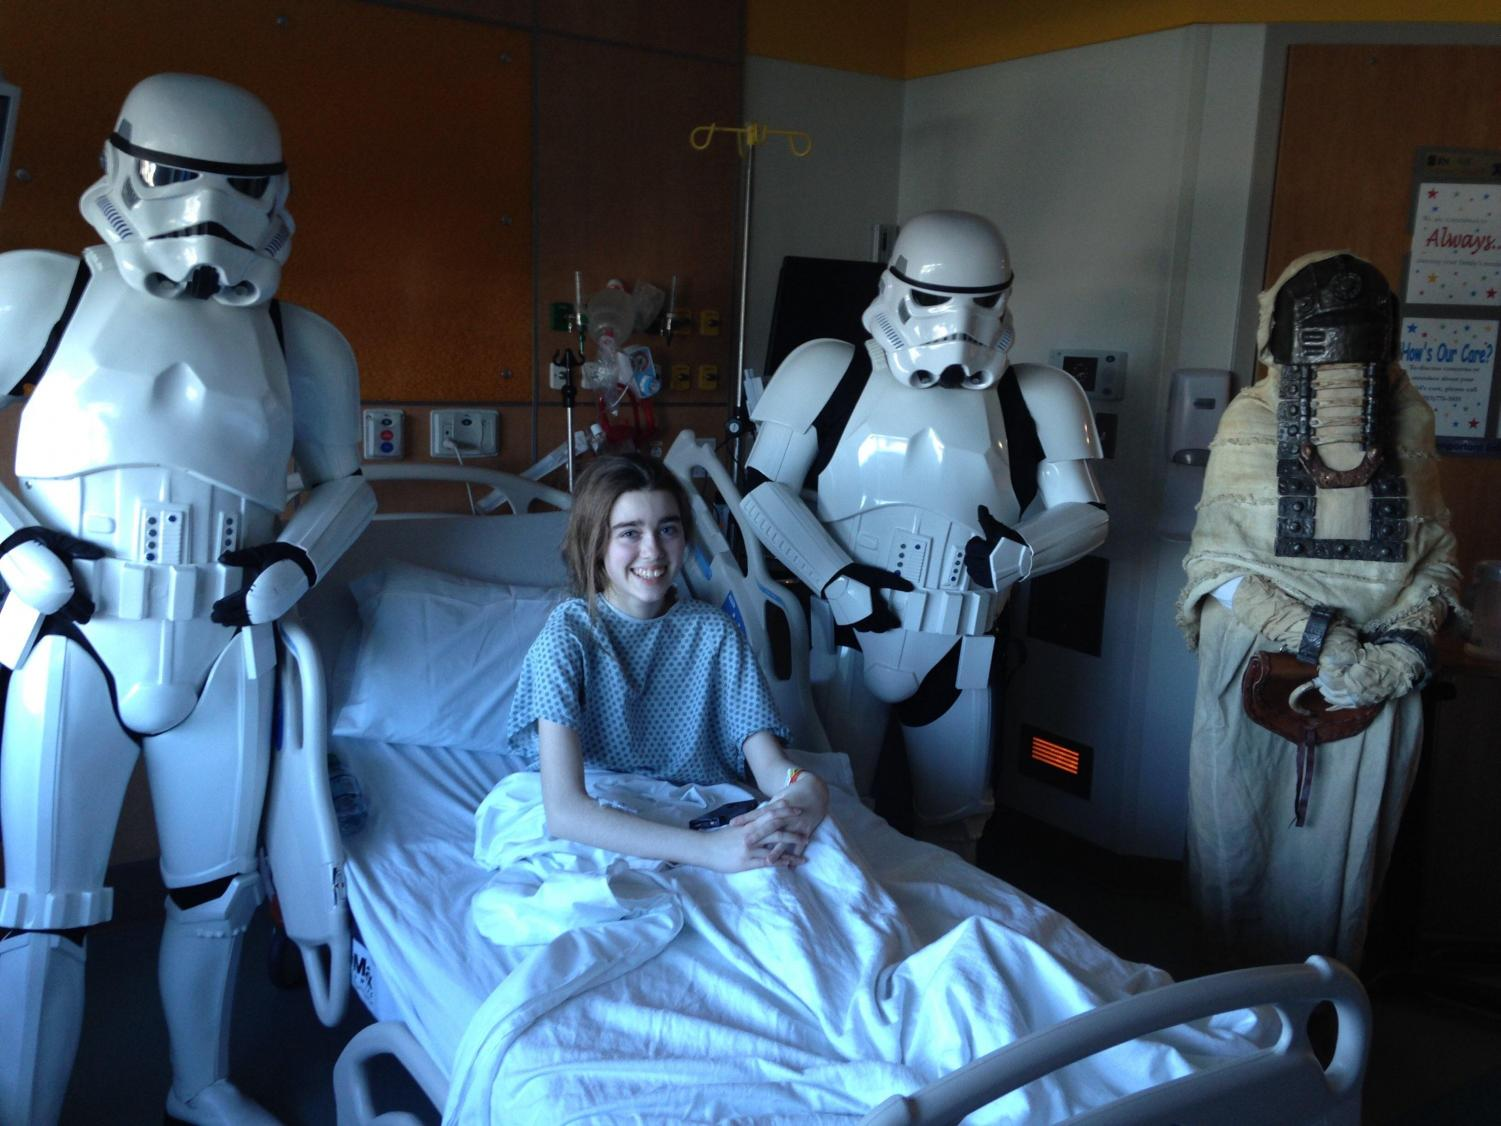 Sophomore Alana McBride is greeted by stormtroopers during one long January stay in the hospital. McBride was later inspired to volunteer in patient care at Inova Fairfax Medical Campus, doing the same job others had done for her.